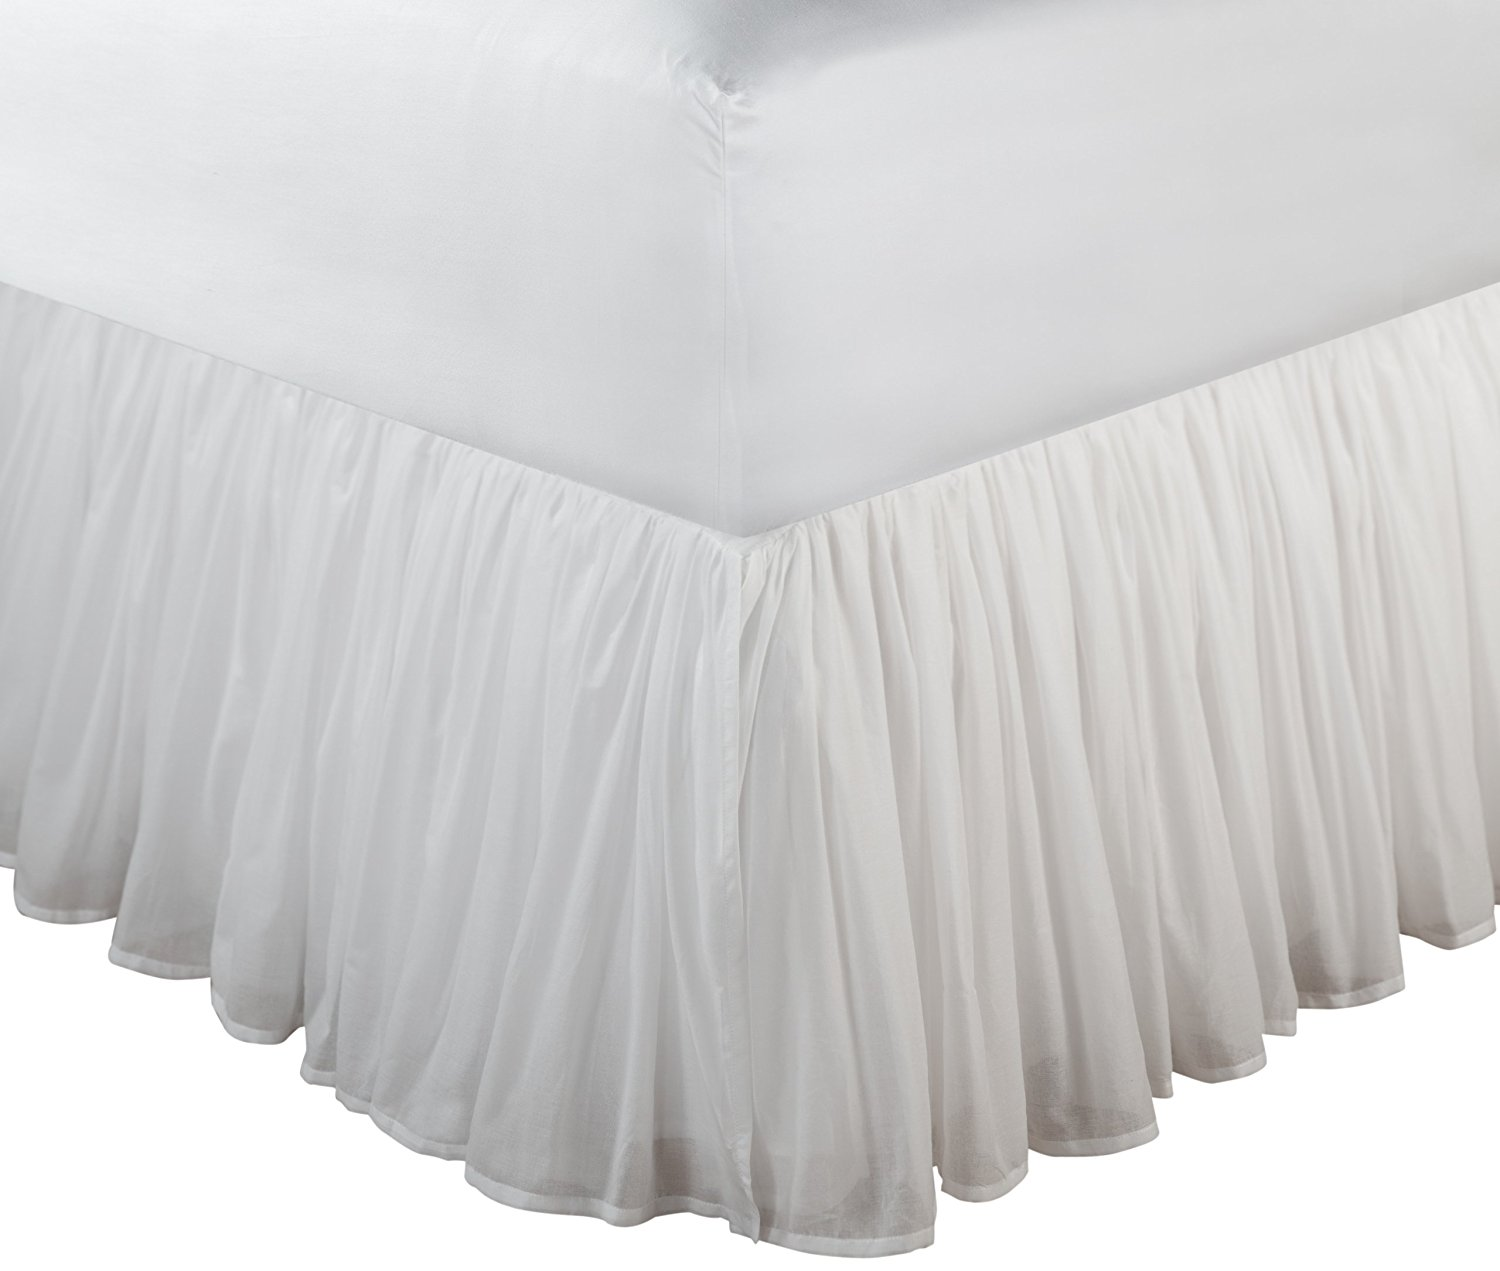 Walmart Bed Skirts | Bed Skirts Queen | Linen Dust Ruffle